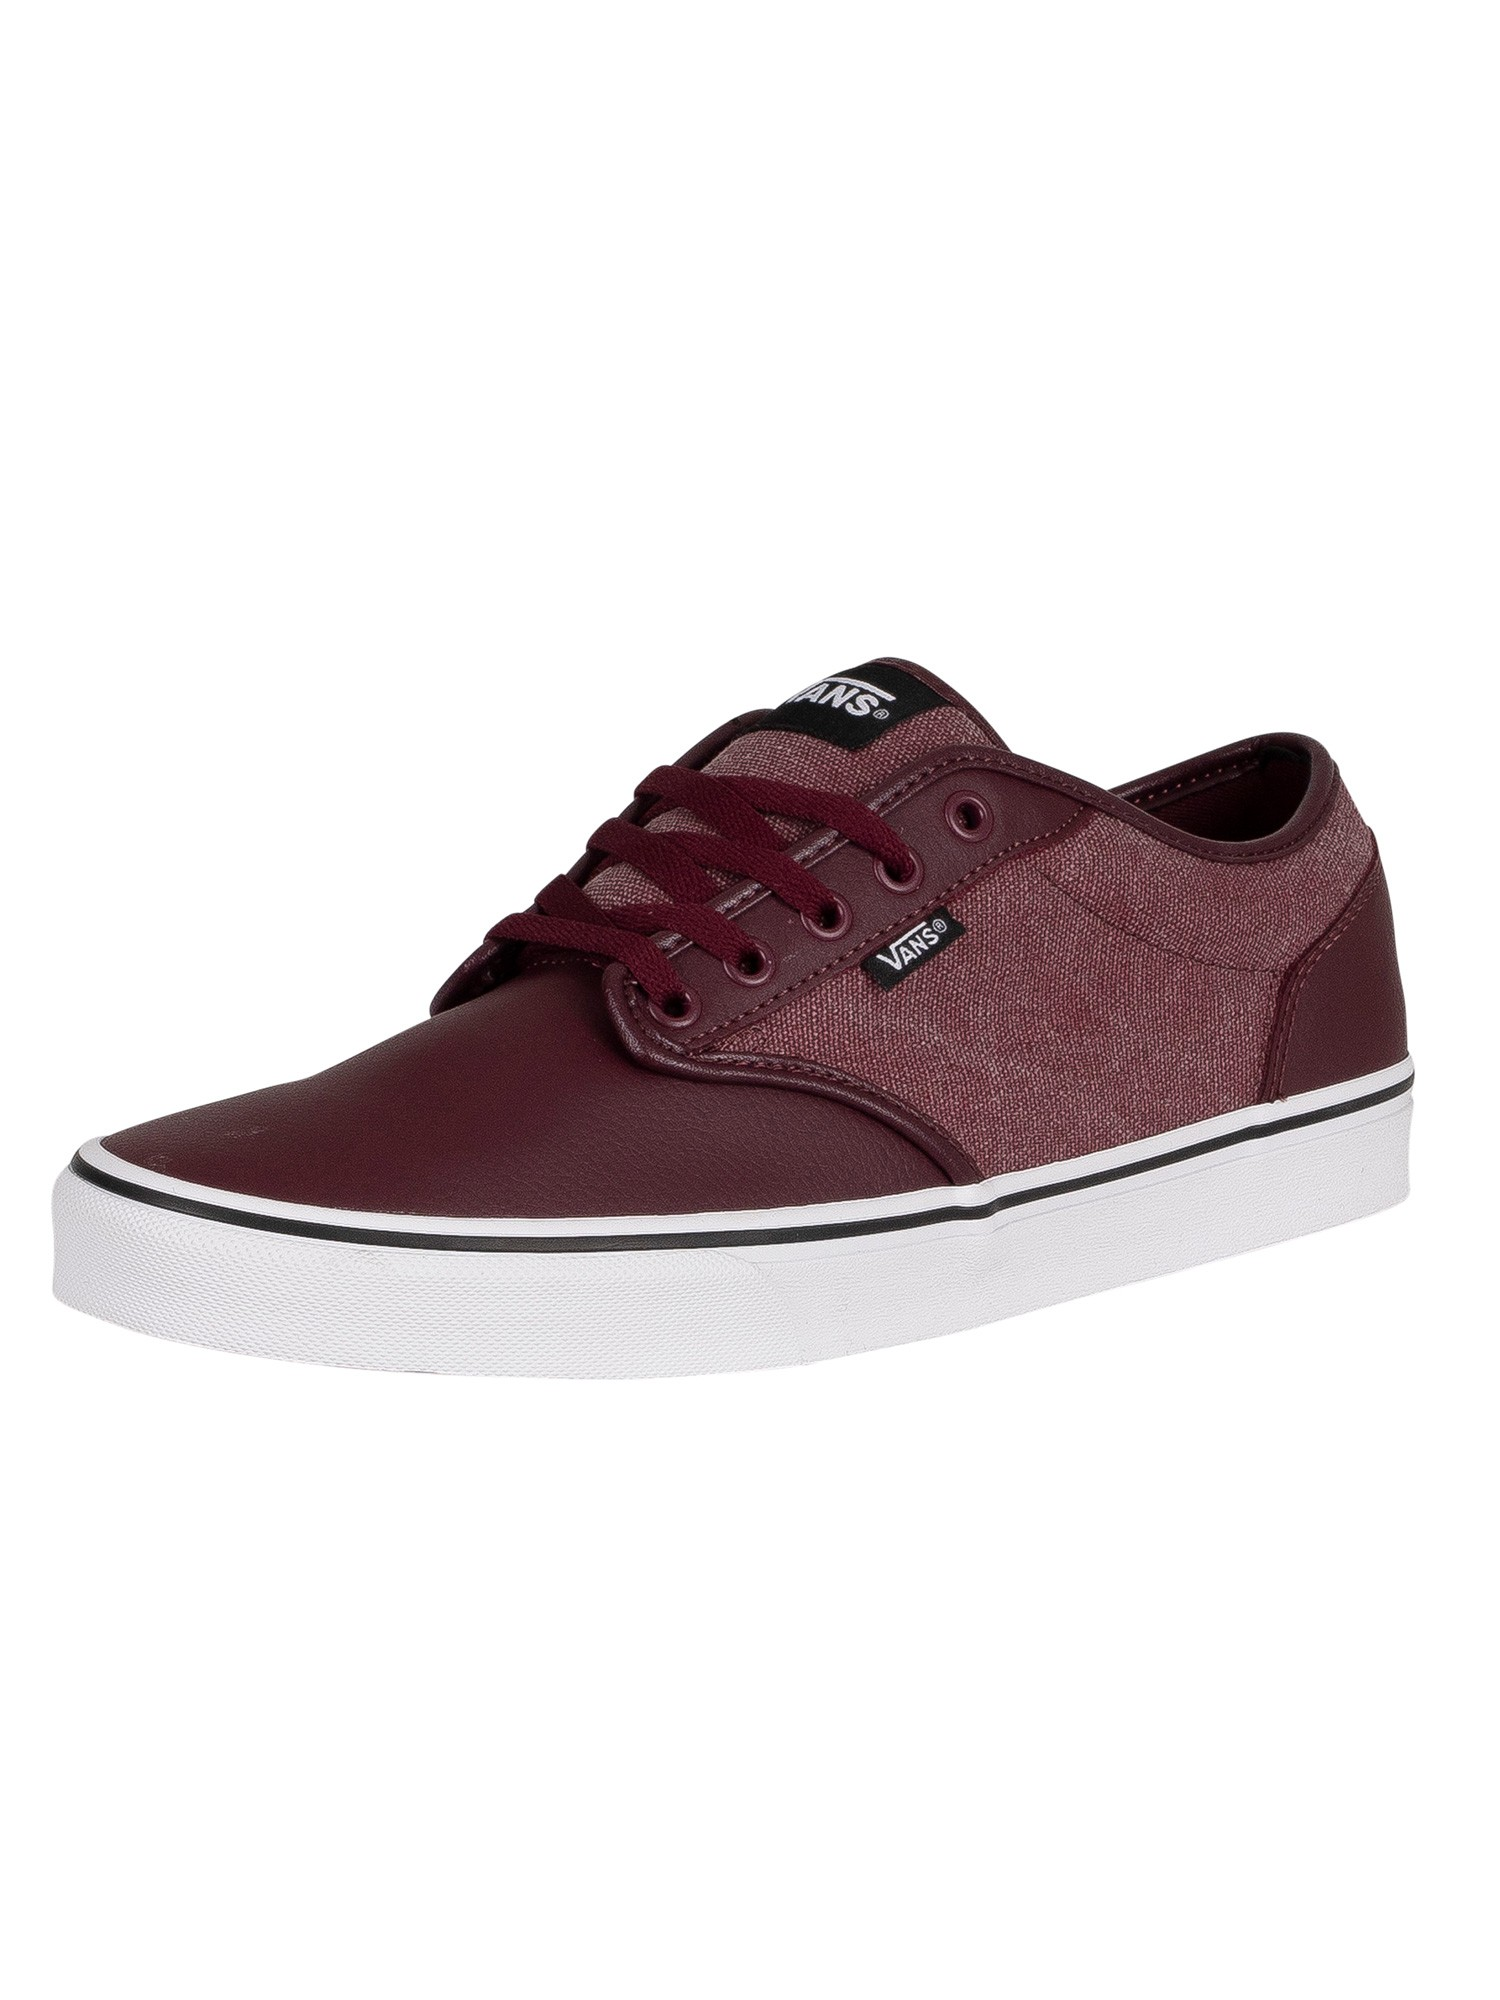 Atwood Leather Washed Canvas Trainers